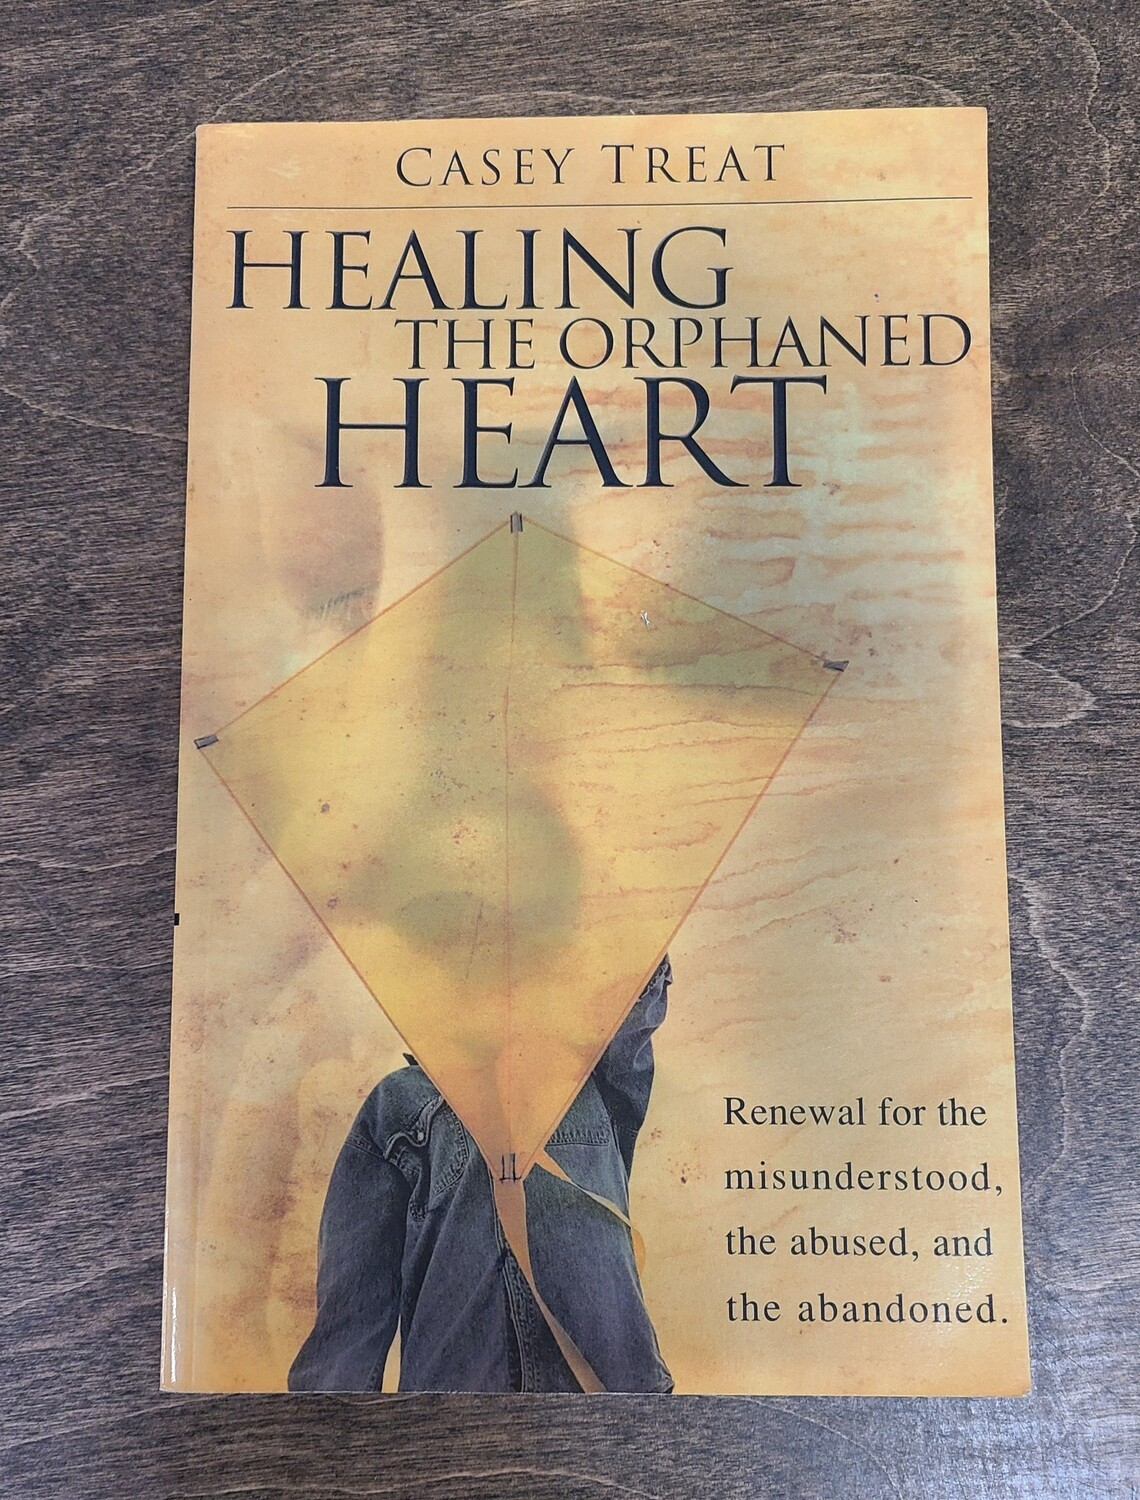 Healing the Orphaned Heart by Casey Treat